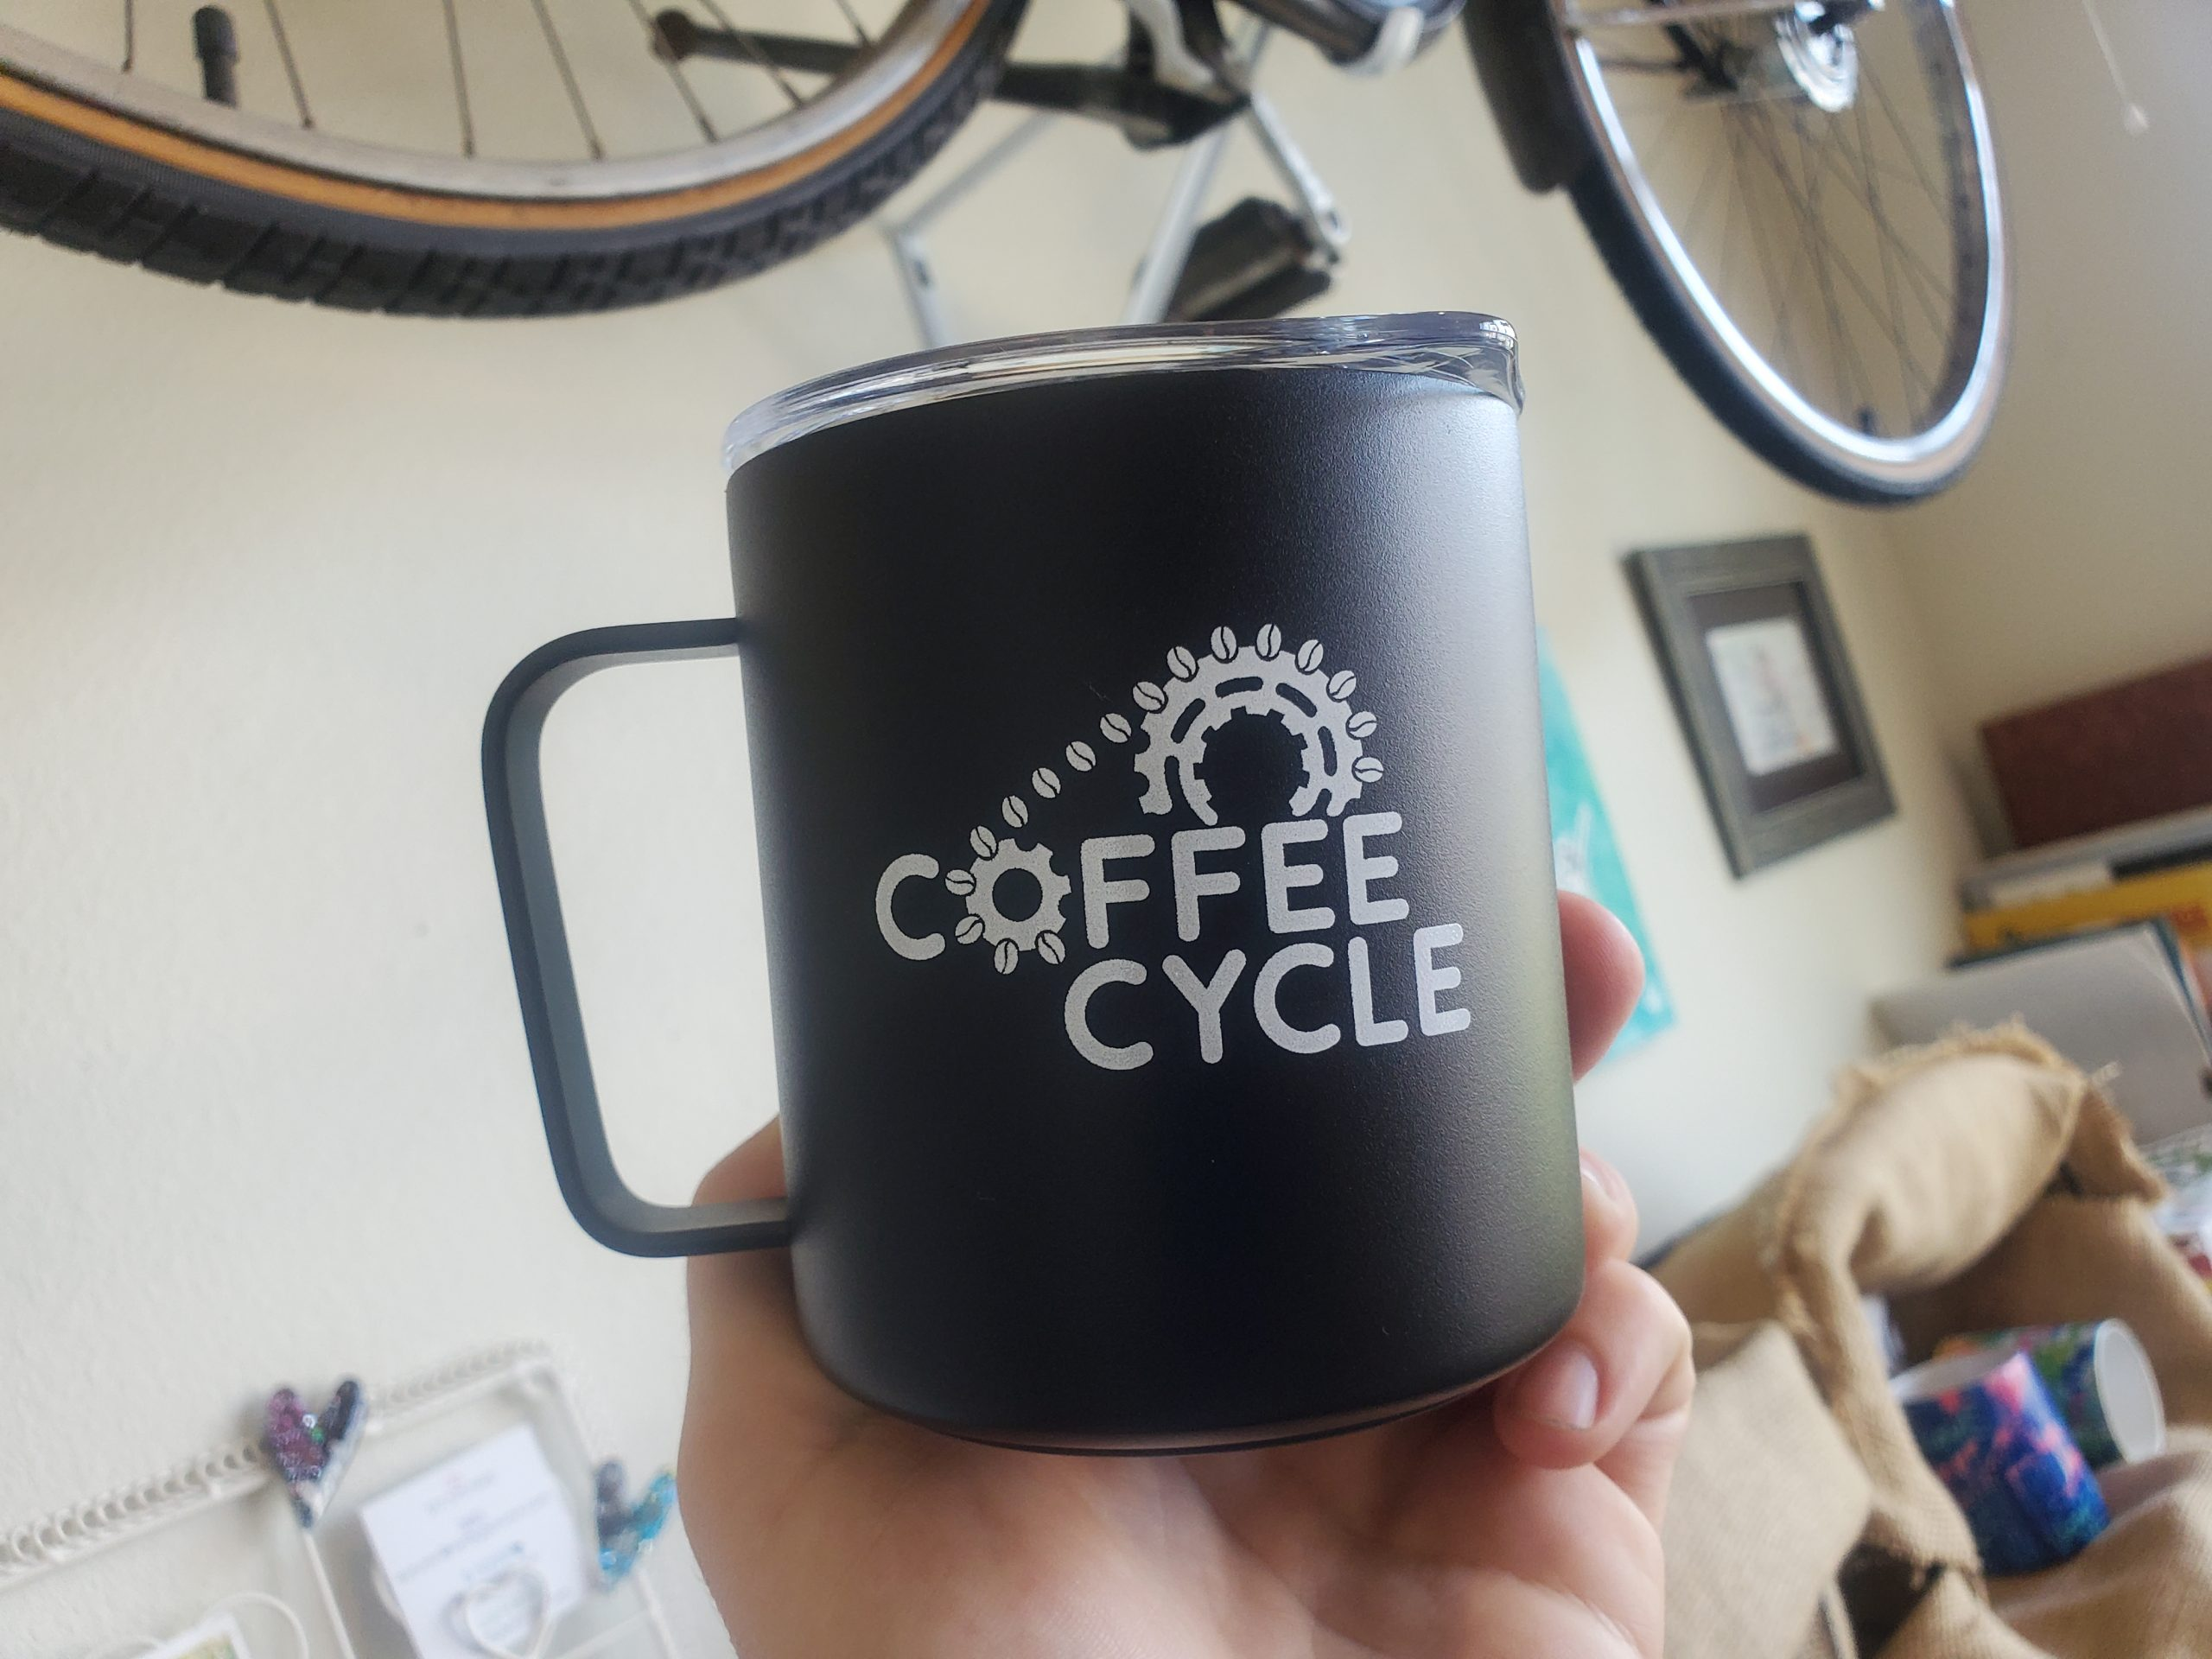 Coffee Cycle Camp Mug in front of a bicycle being held up in front of the camera.